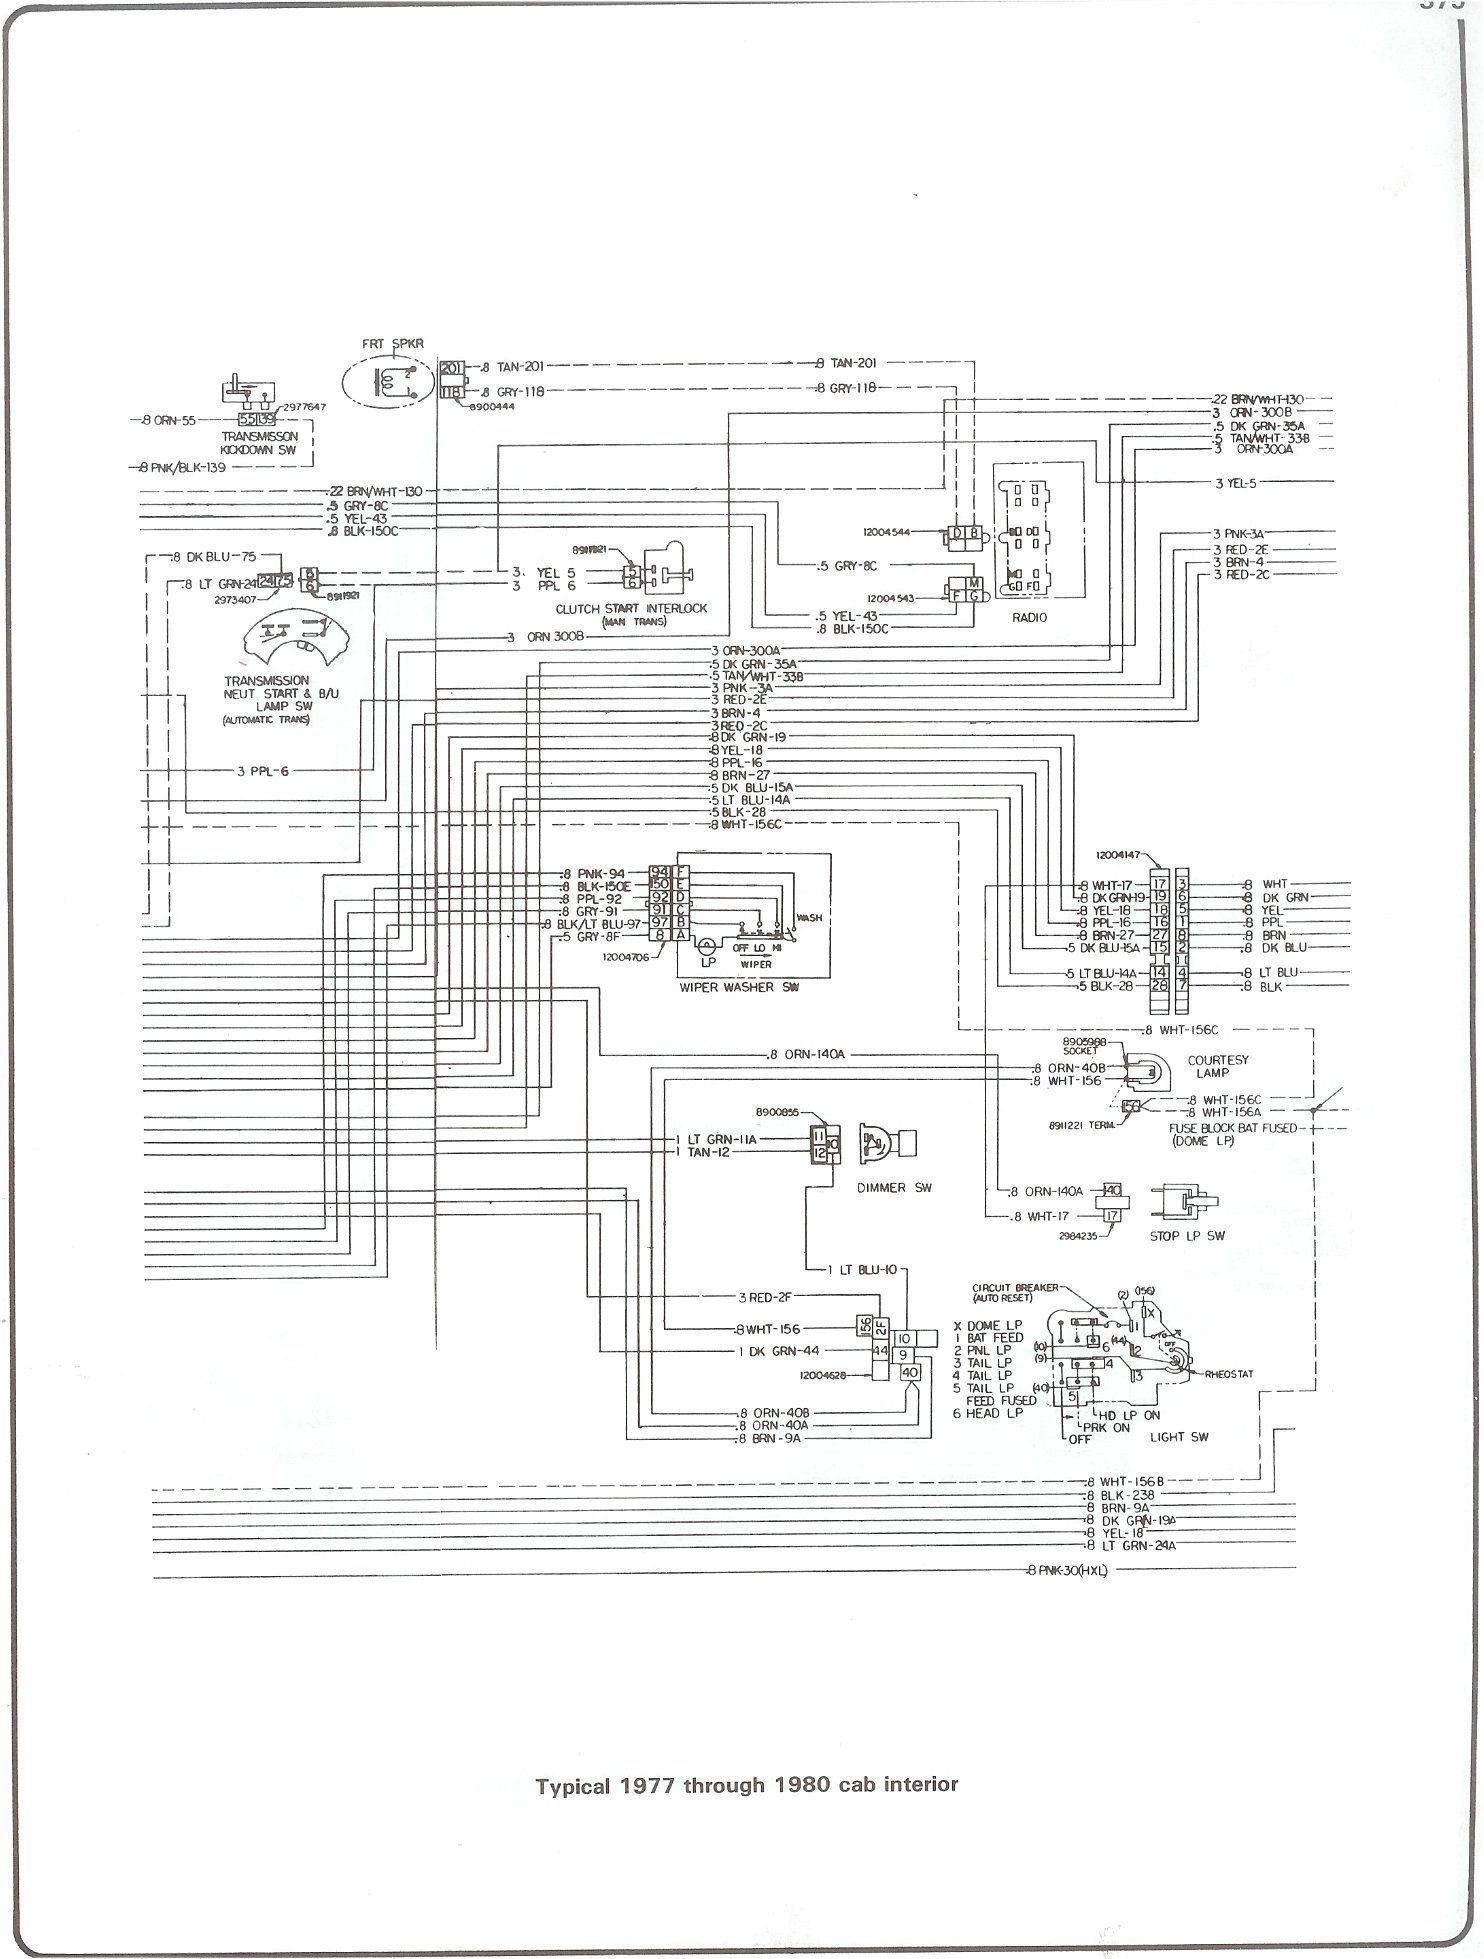 78 F150 Ignition Wiring Harness Library 1977 Ford F100 Schematics Complete 73 87 Diagrams 1978 F 250 Diagram 1969